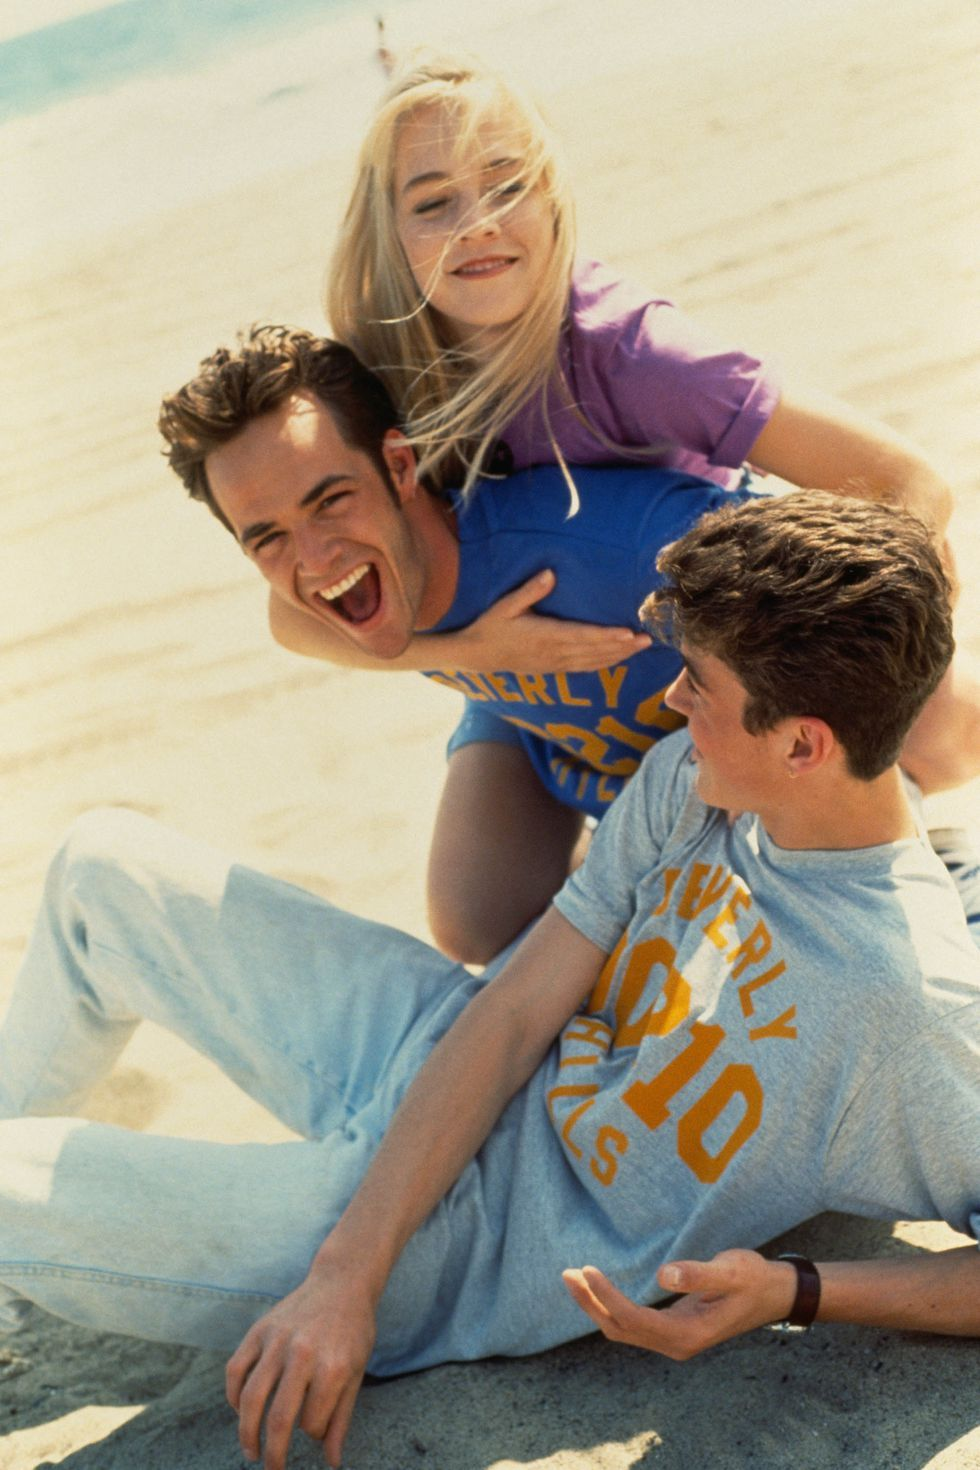 Perry, Jennie Garth, and Brian Austin Green from the television series Beverly Hills, 90210 in 1991.